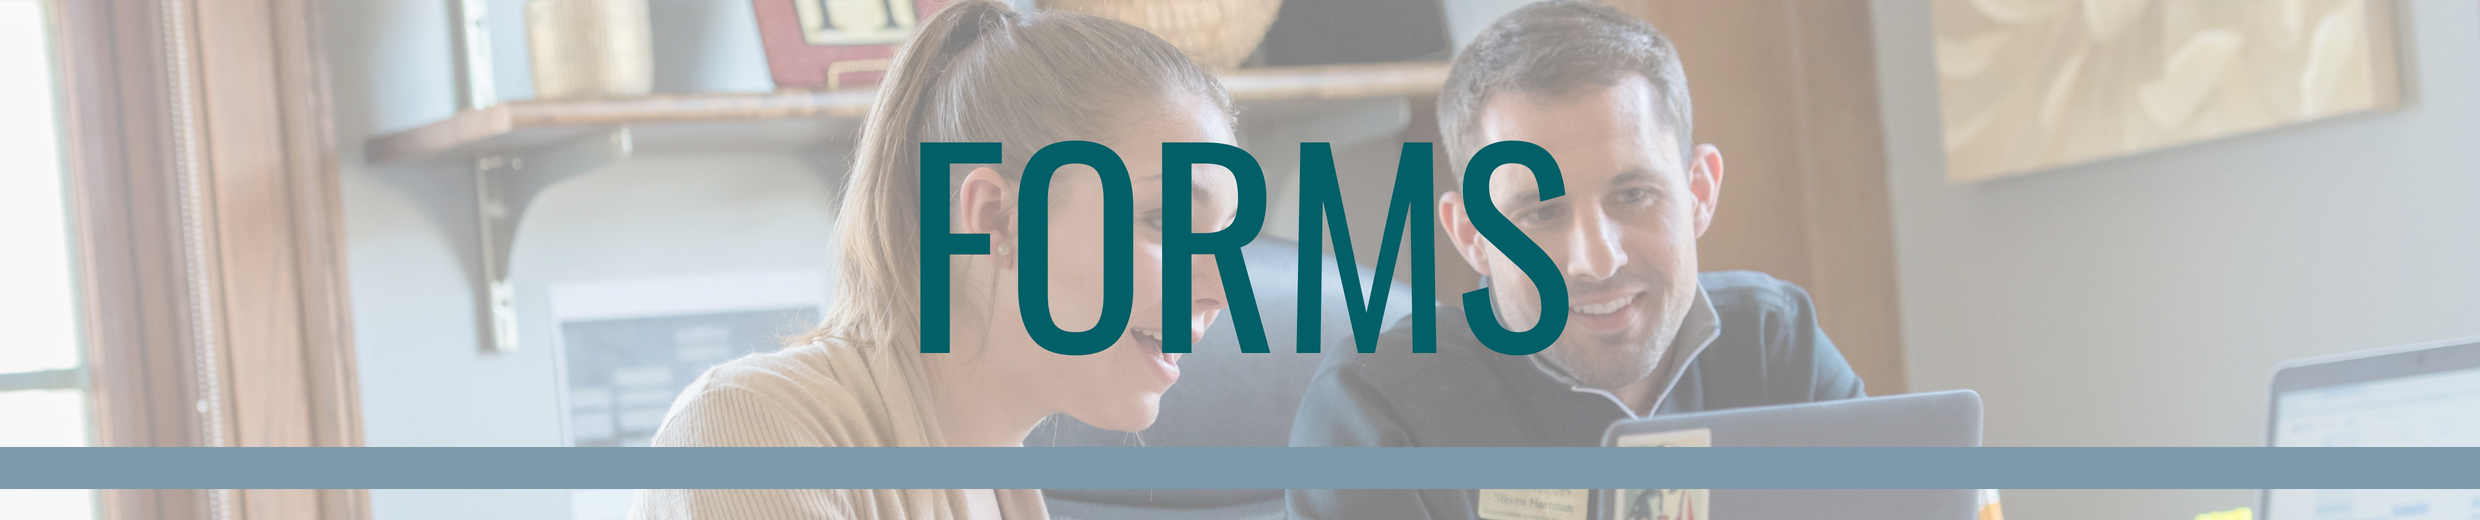 Forms Banner